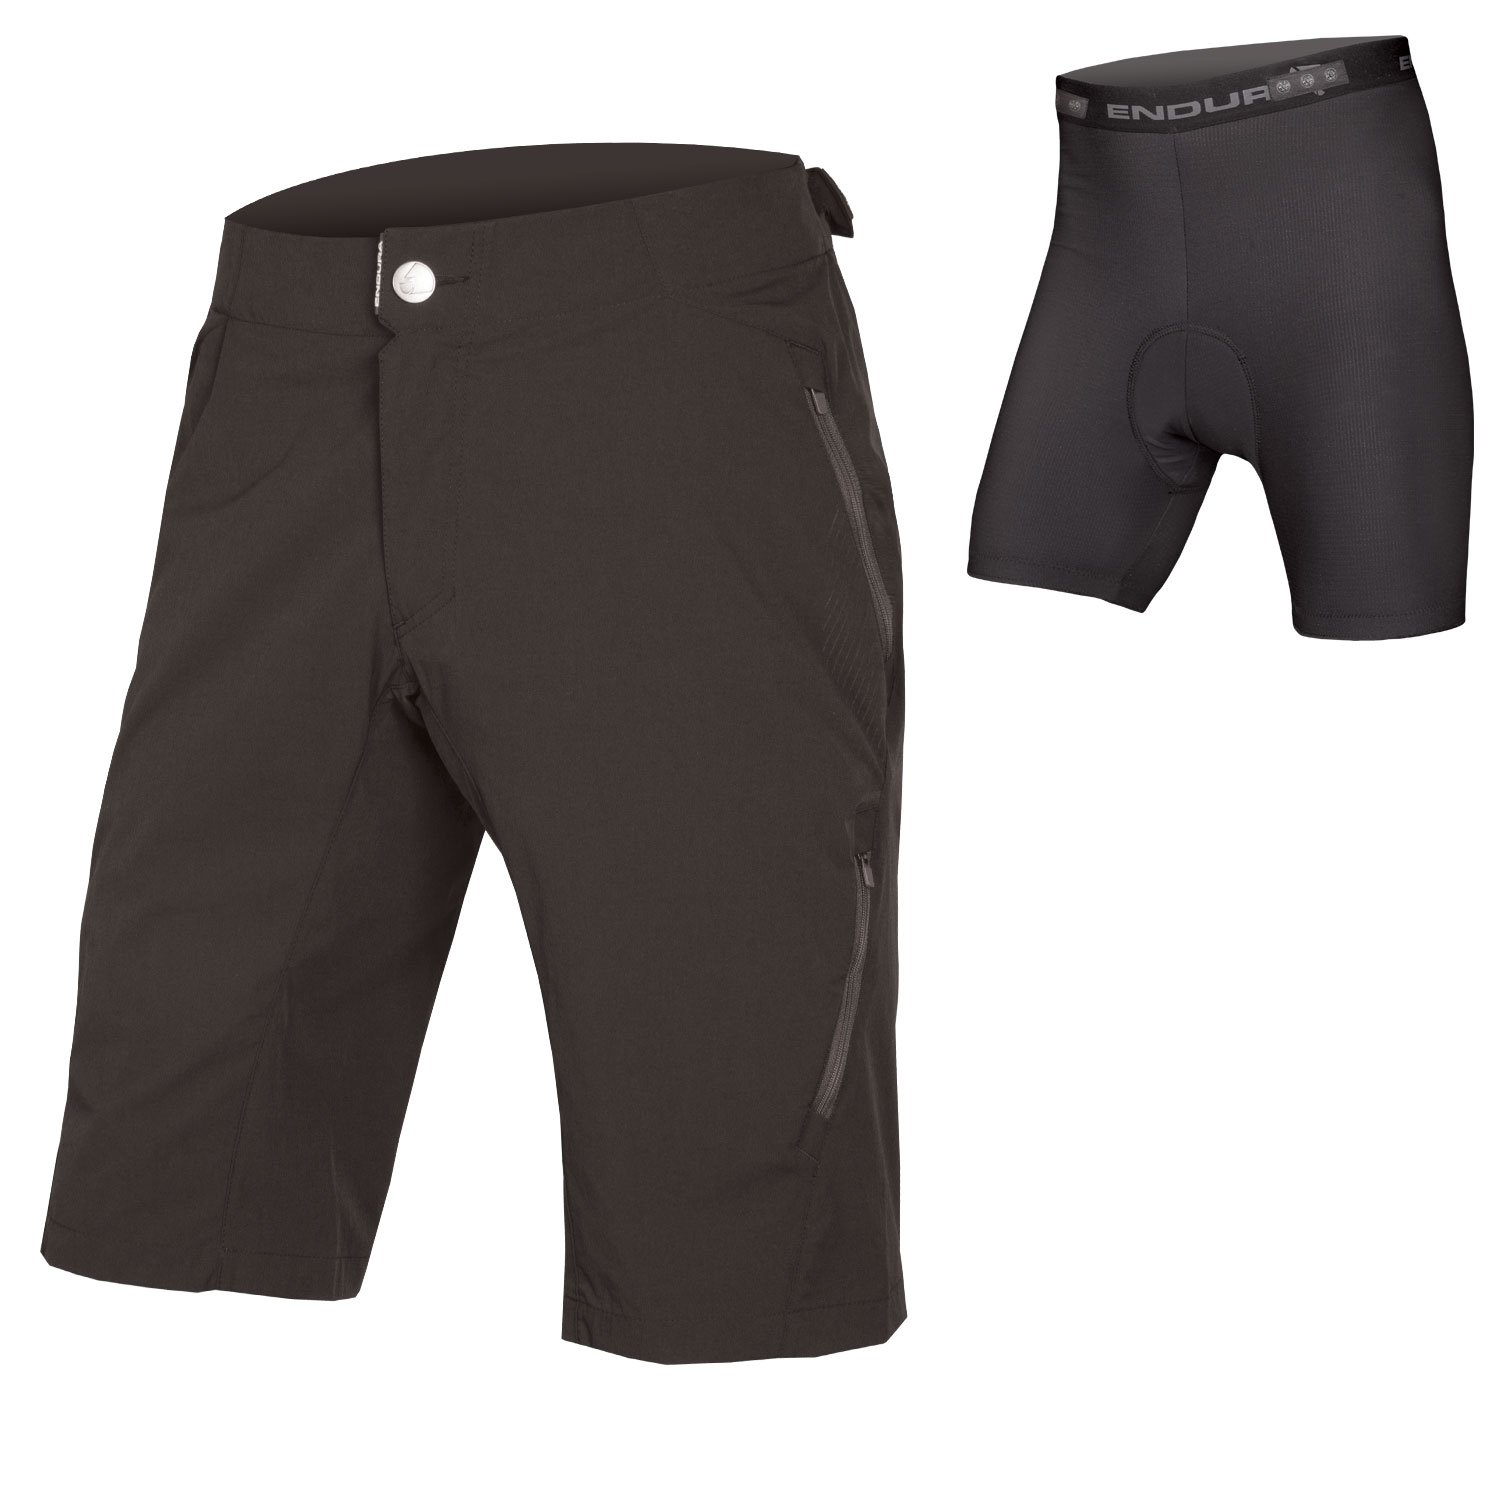 Endura SingleTrack Lite Men's Baggy MTB Shorts II with Liner